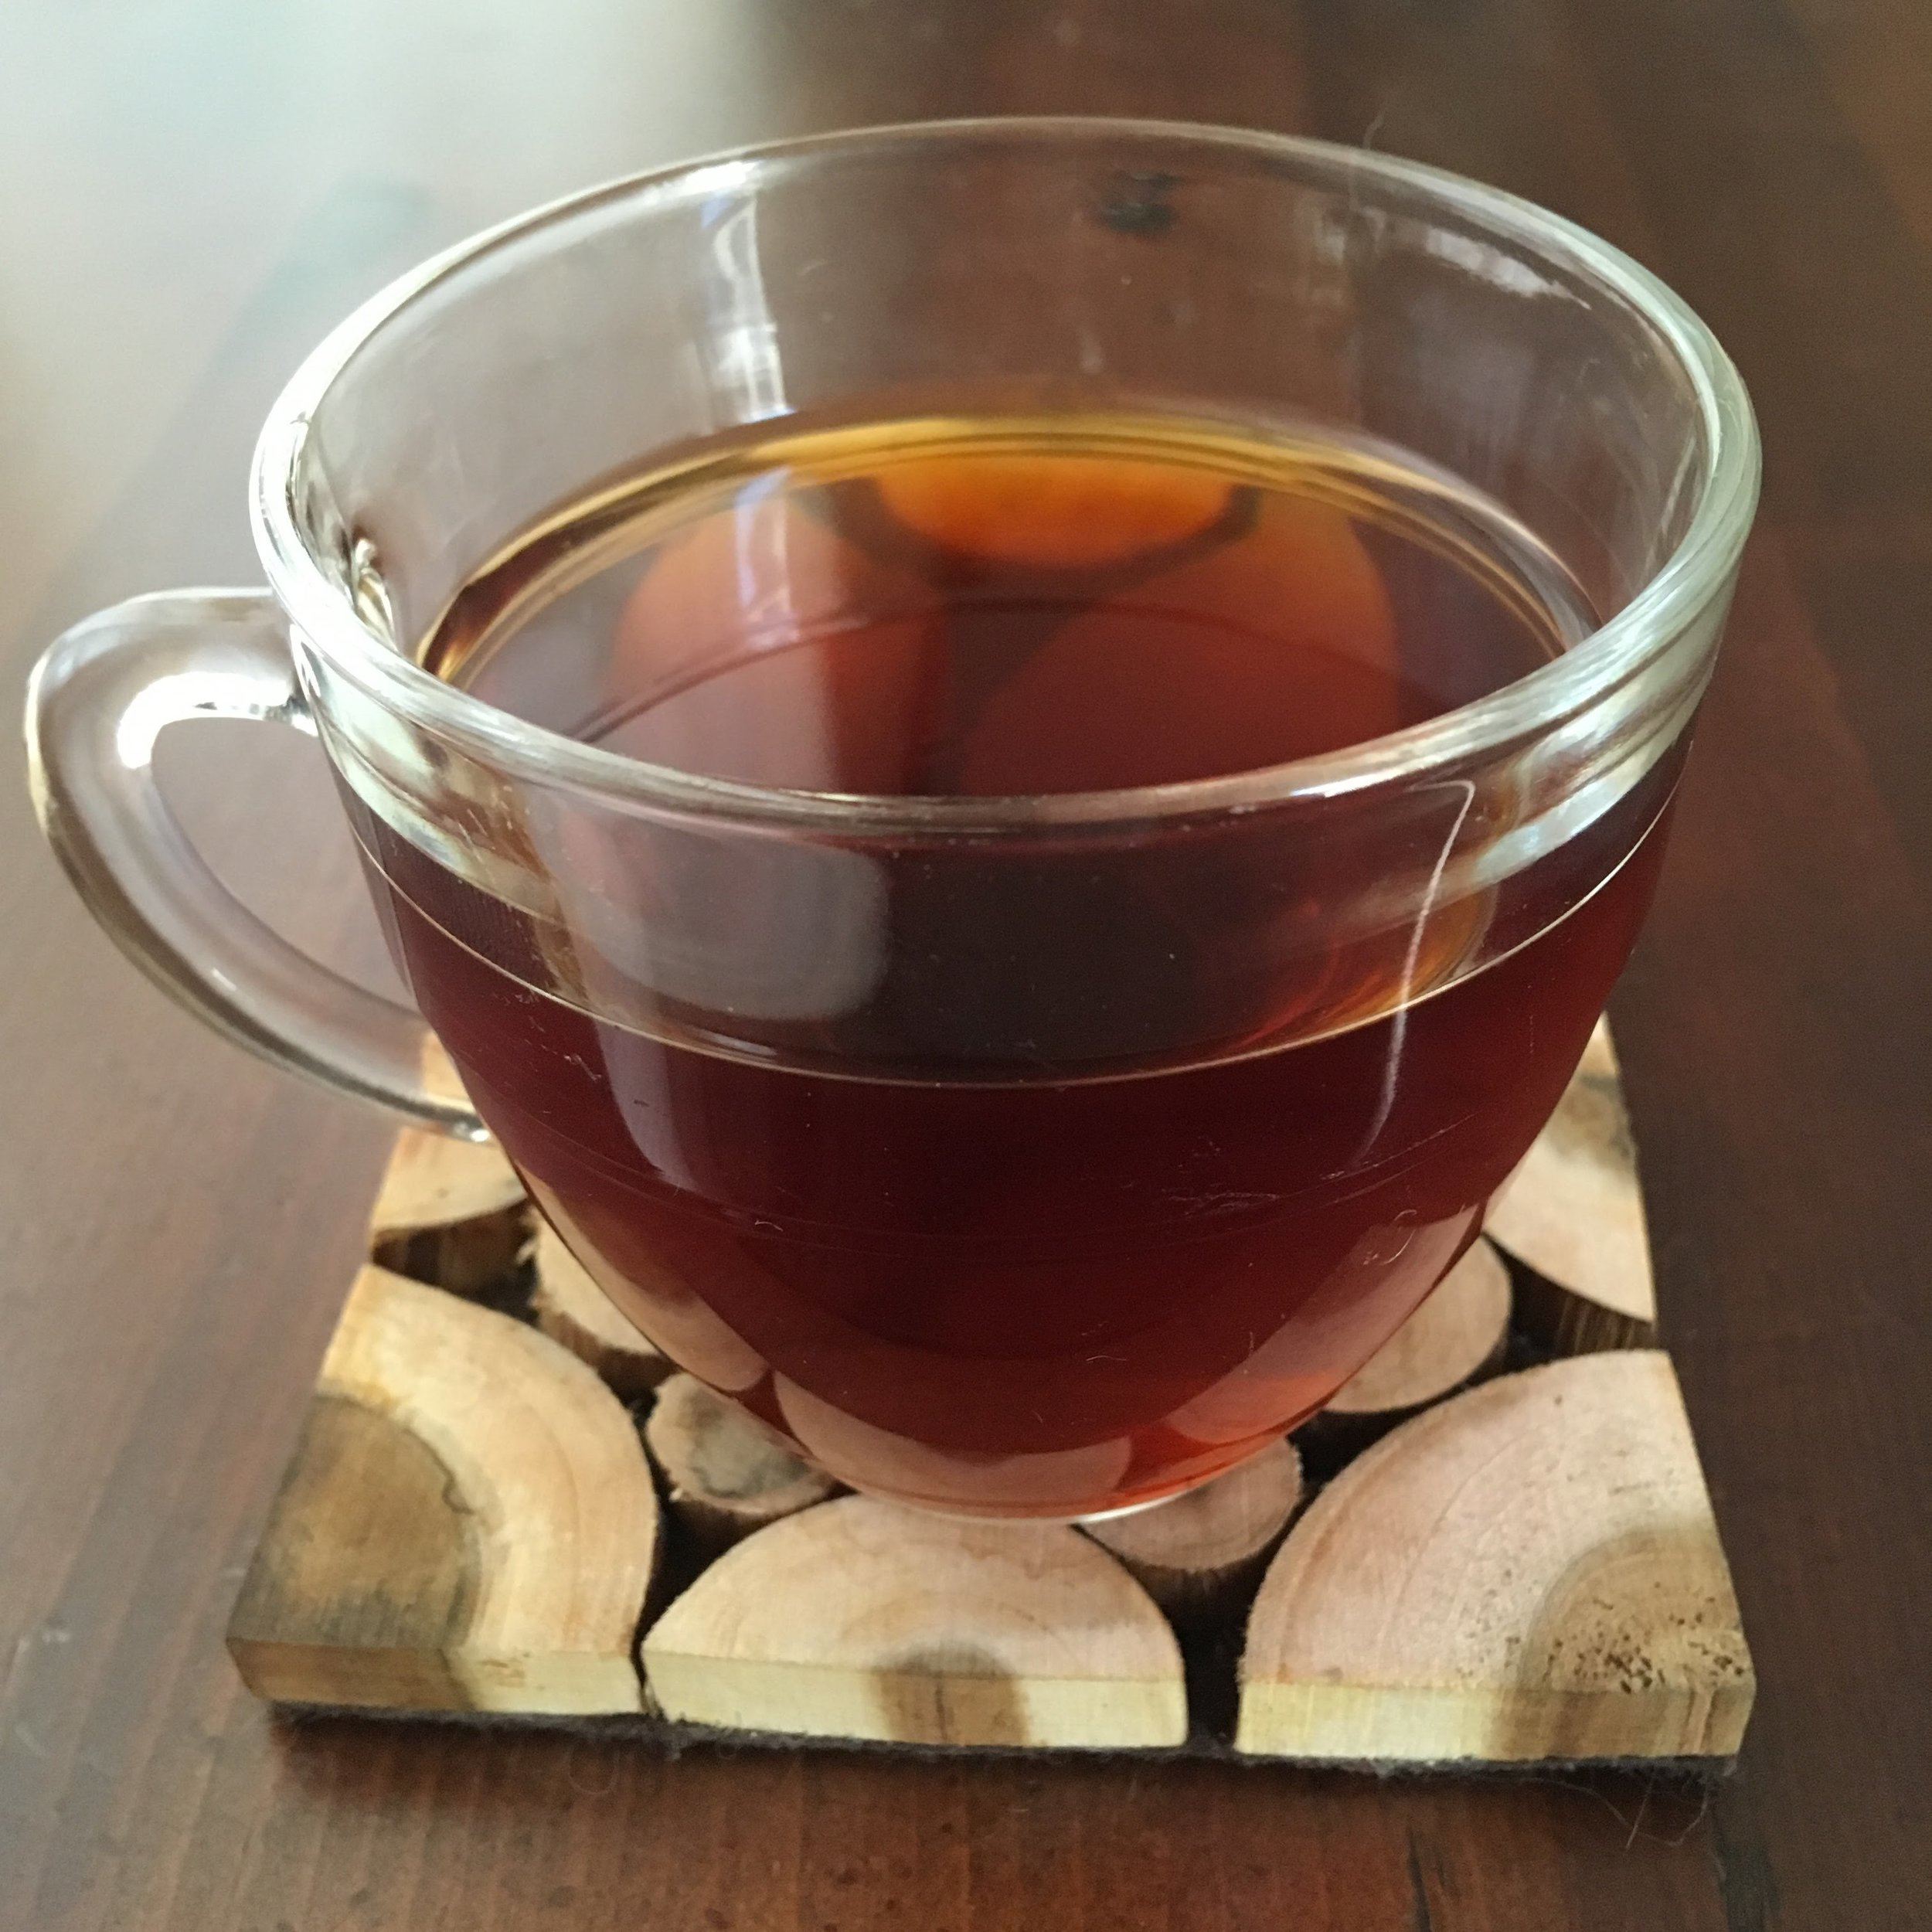 Hot cup of dandelion root coffee